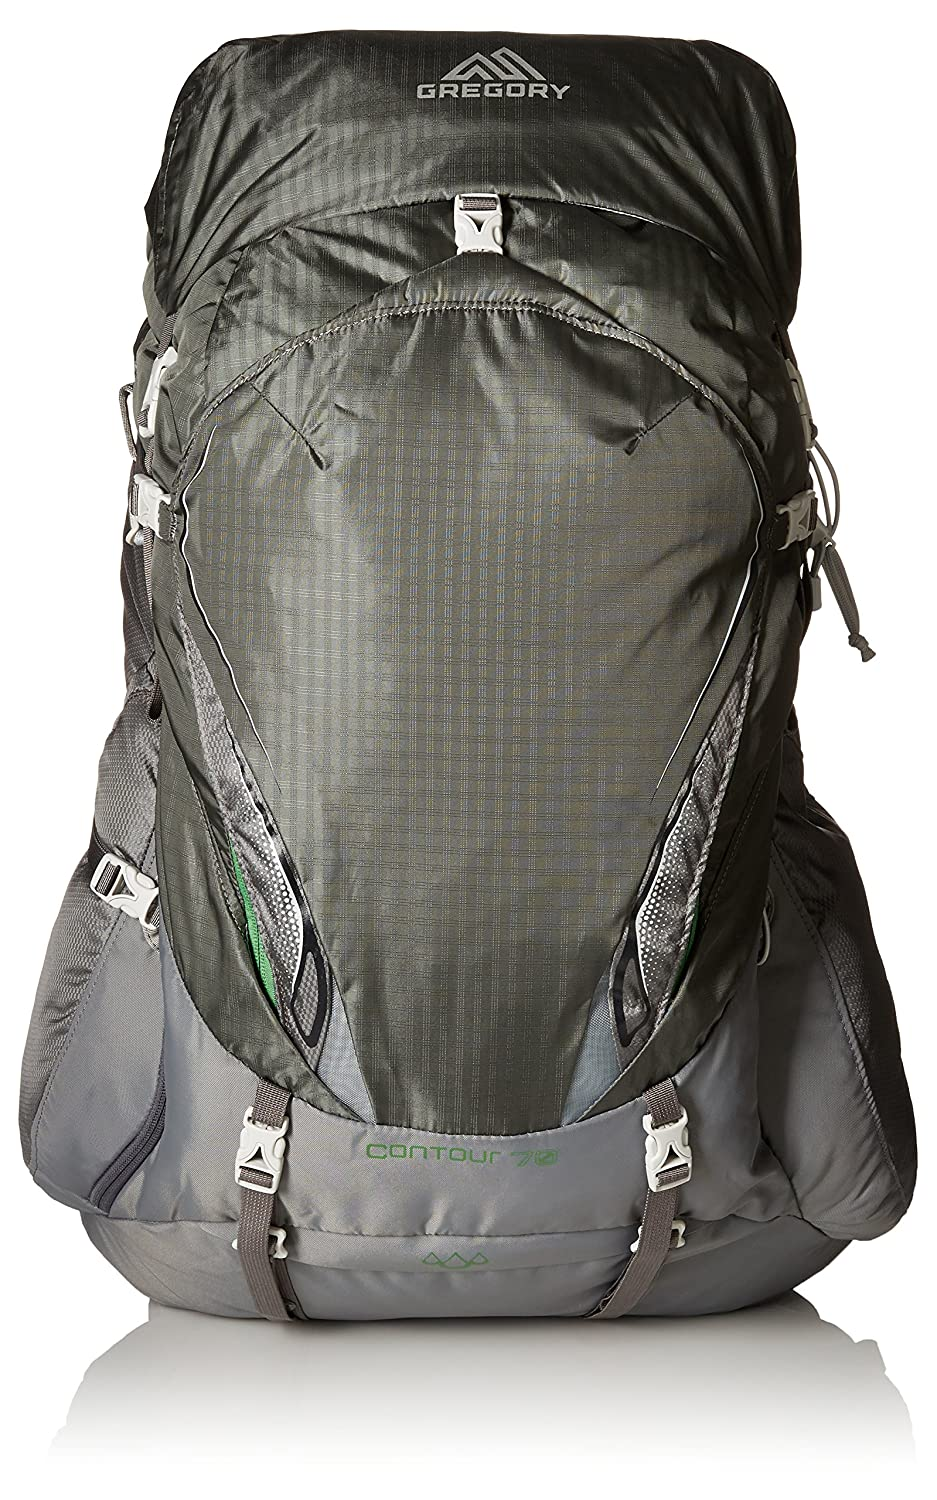 Gregory Mountain Products Contour 70 Backpack